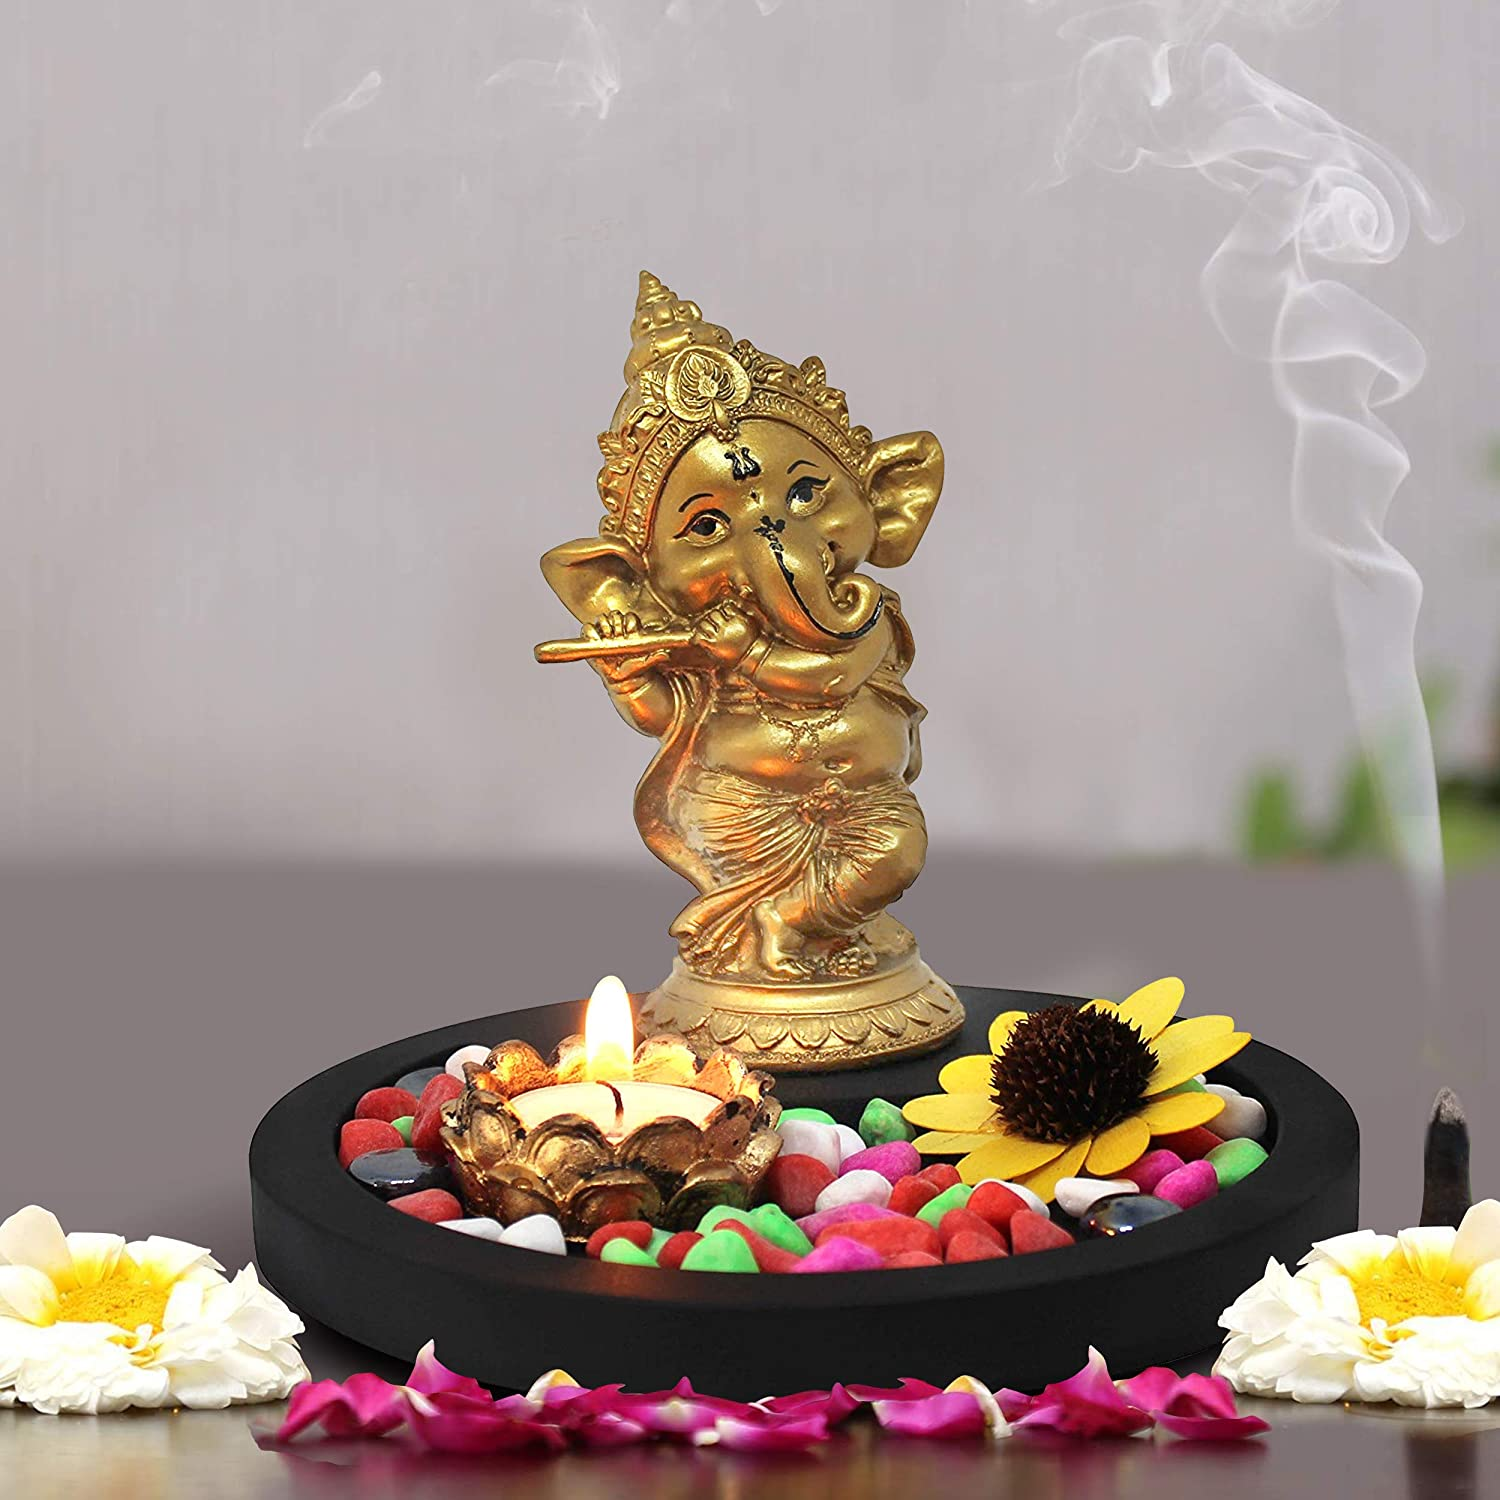 TIED RIBBONS Golden Ganesha Playing Bansuri Ganesh Idol for Gift | Diwali Gift Set | Home Decor Murti